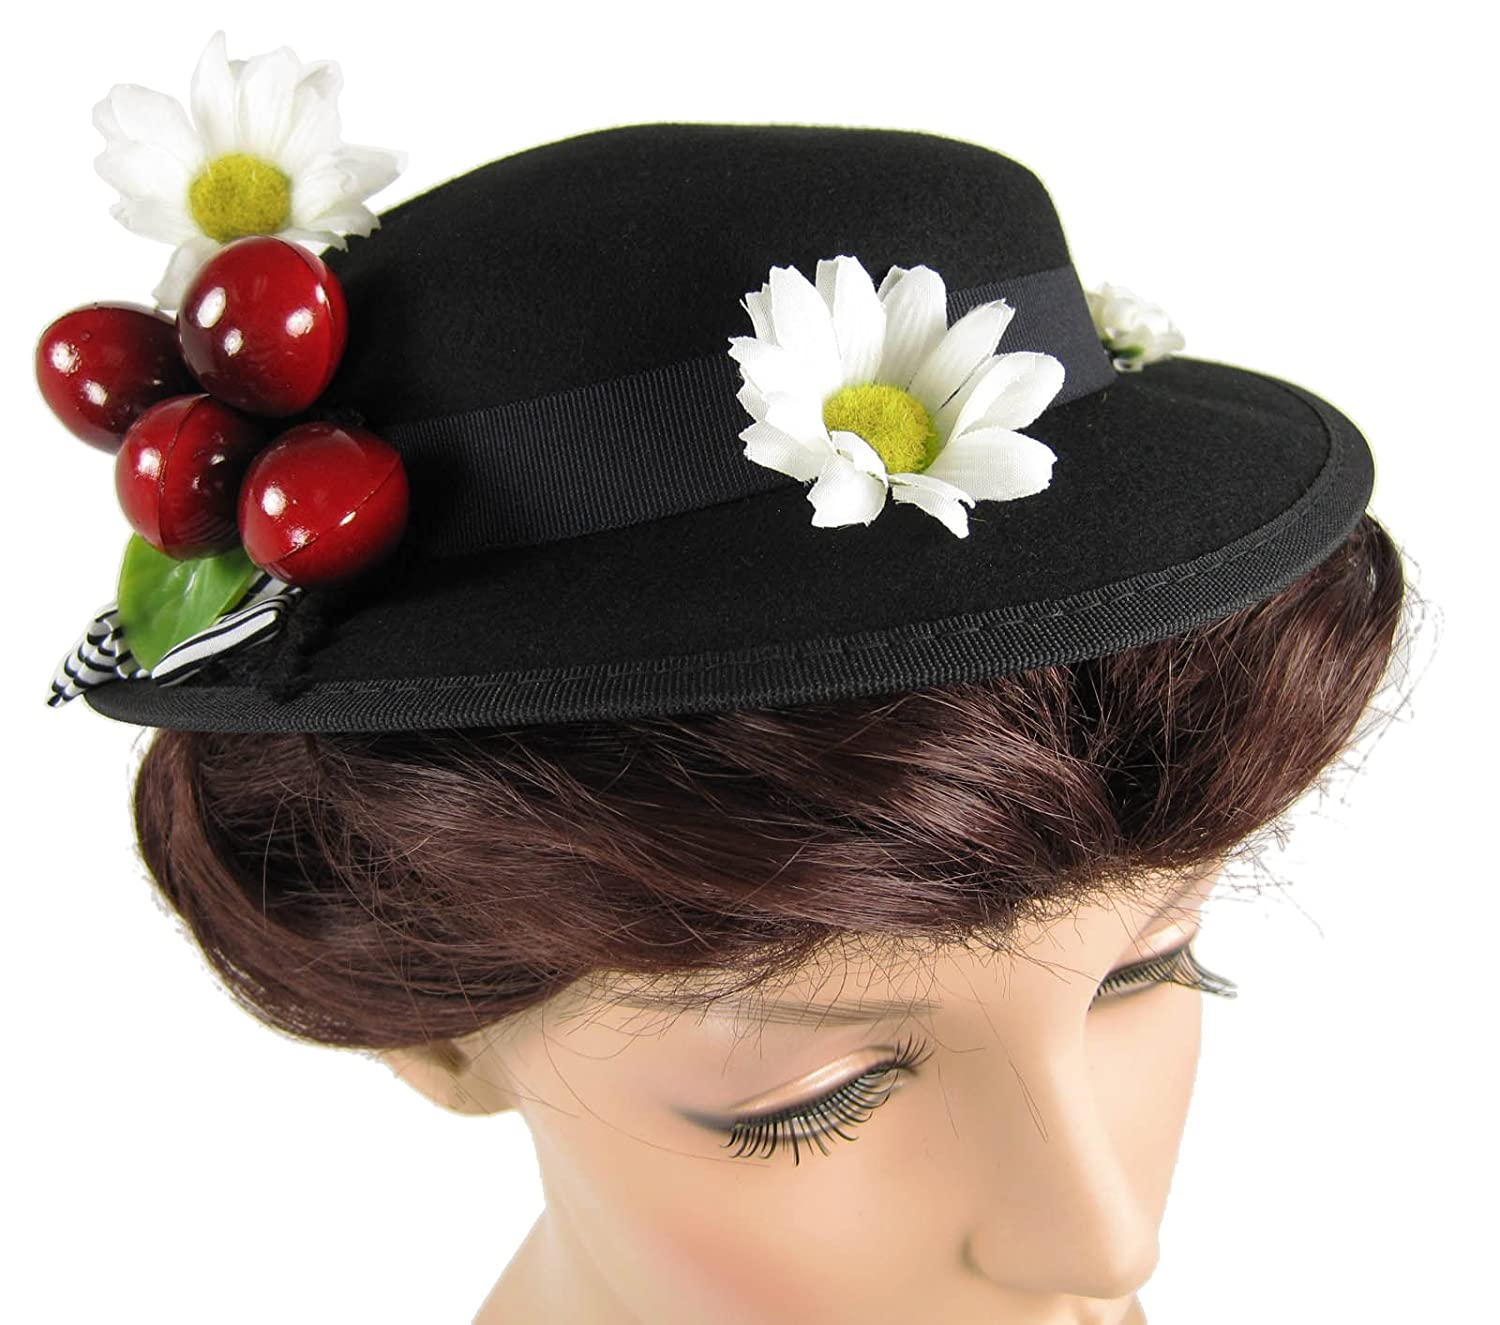 Easy DIY Edwardian Titanic Costumes 1910-1915 Womens English Nanny Poppins Costume Hat $48.99 AT vintagedancer.com